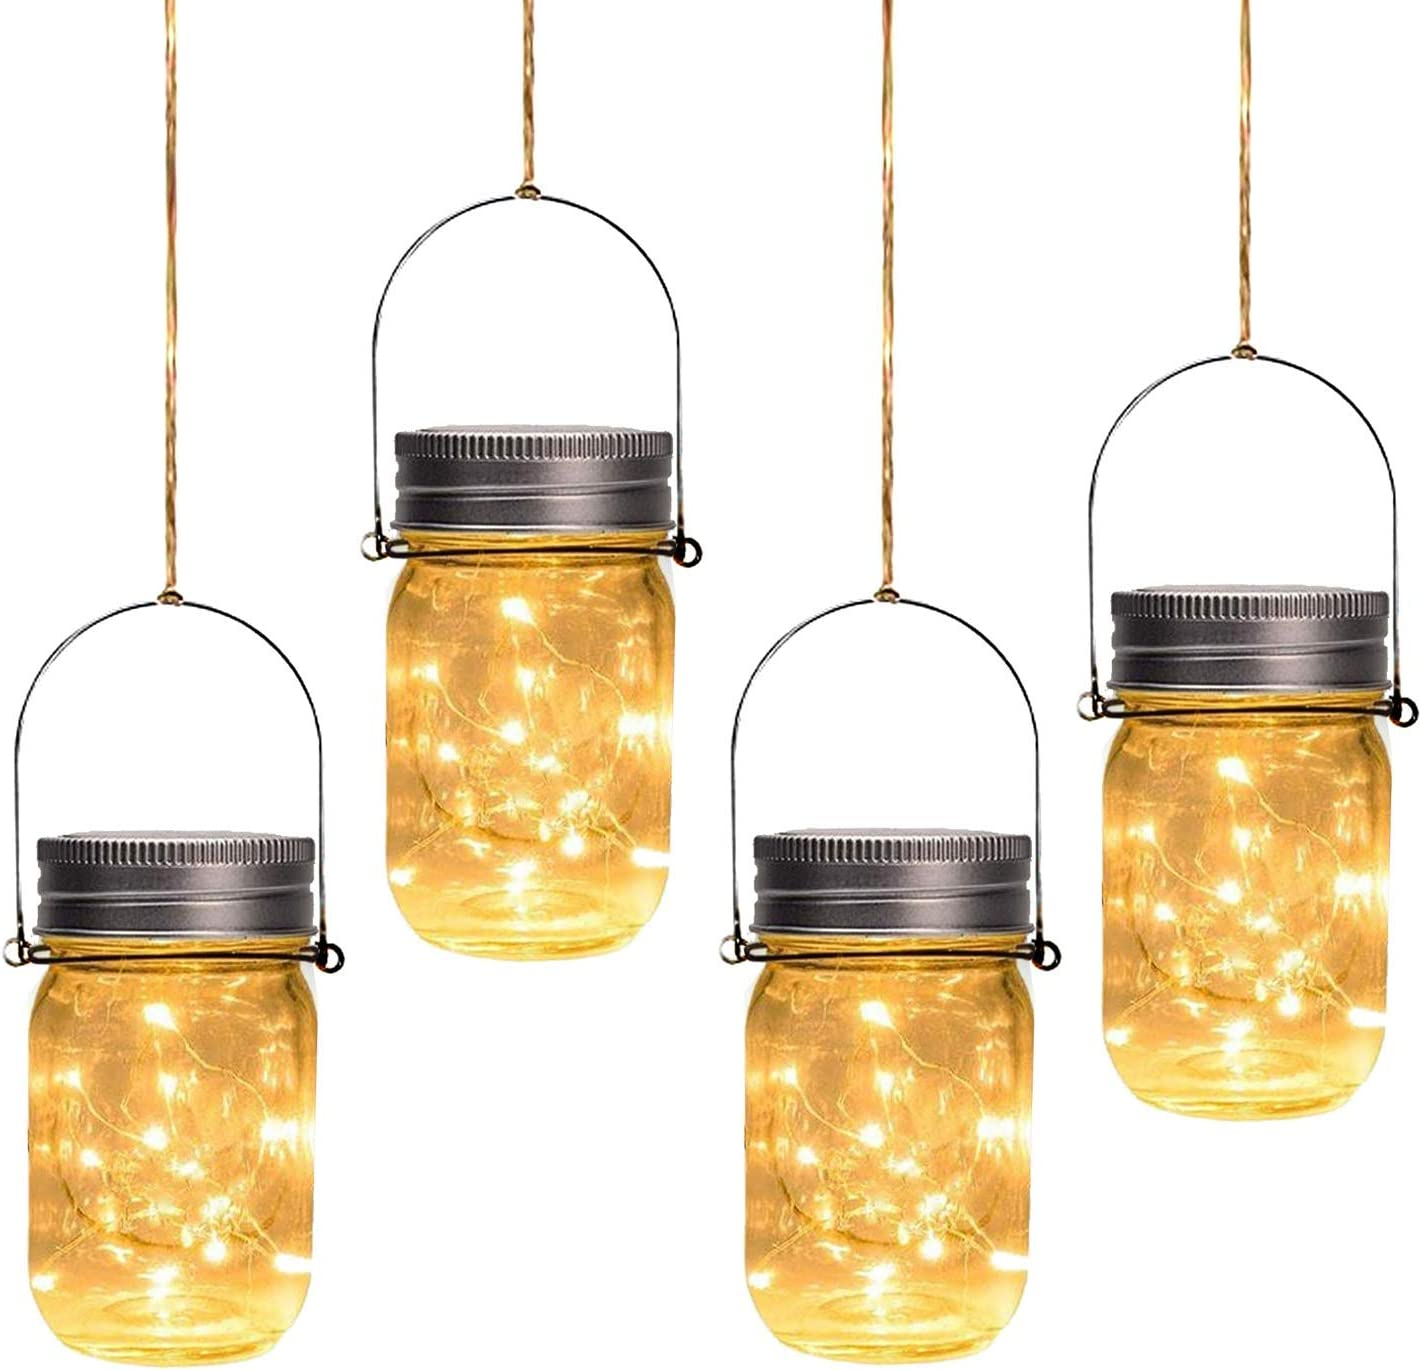 Otdair Solar Mason Jar Lights, 4 Pack 30 LED Outdoor Hanging Solar Lights for Garden Party Patio Fairy Wedding Decor (Jars & Handles Included)